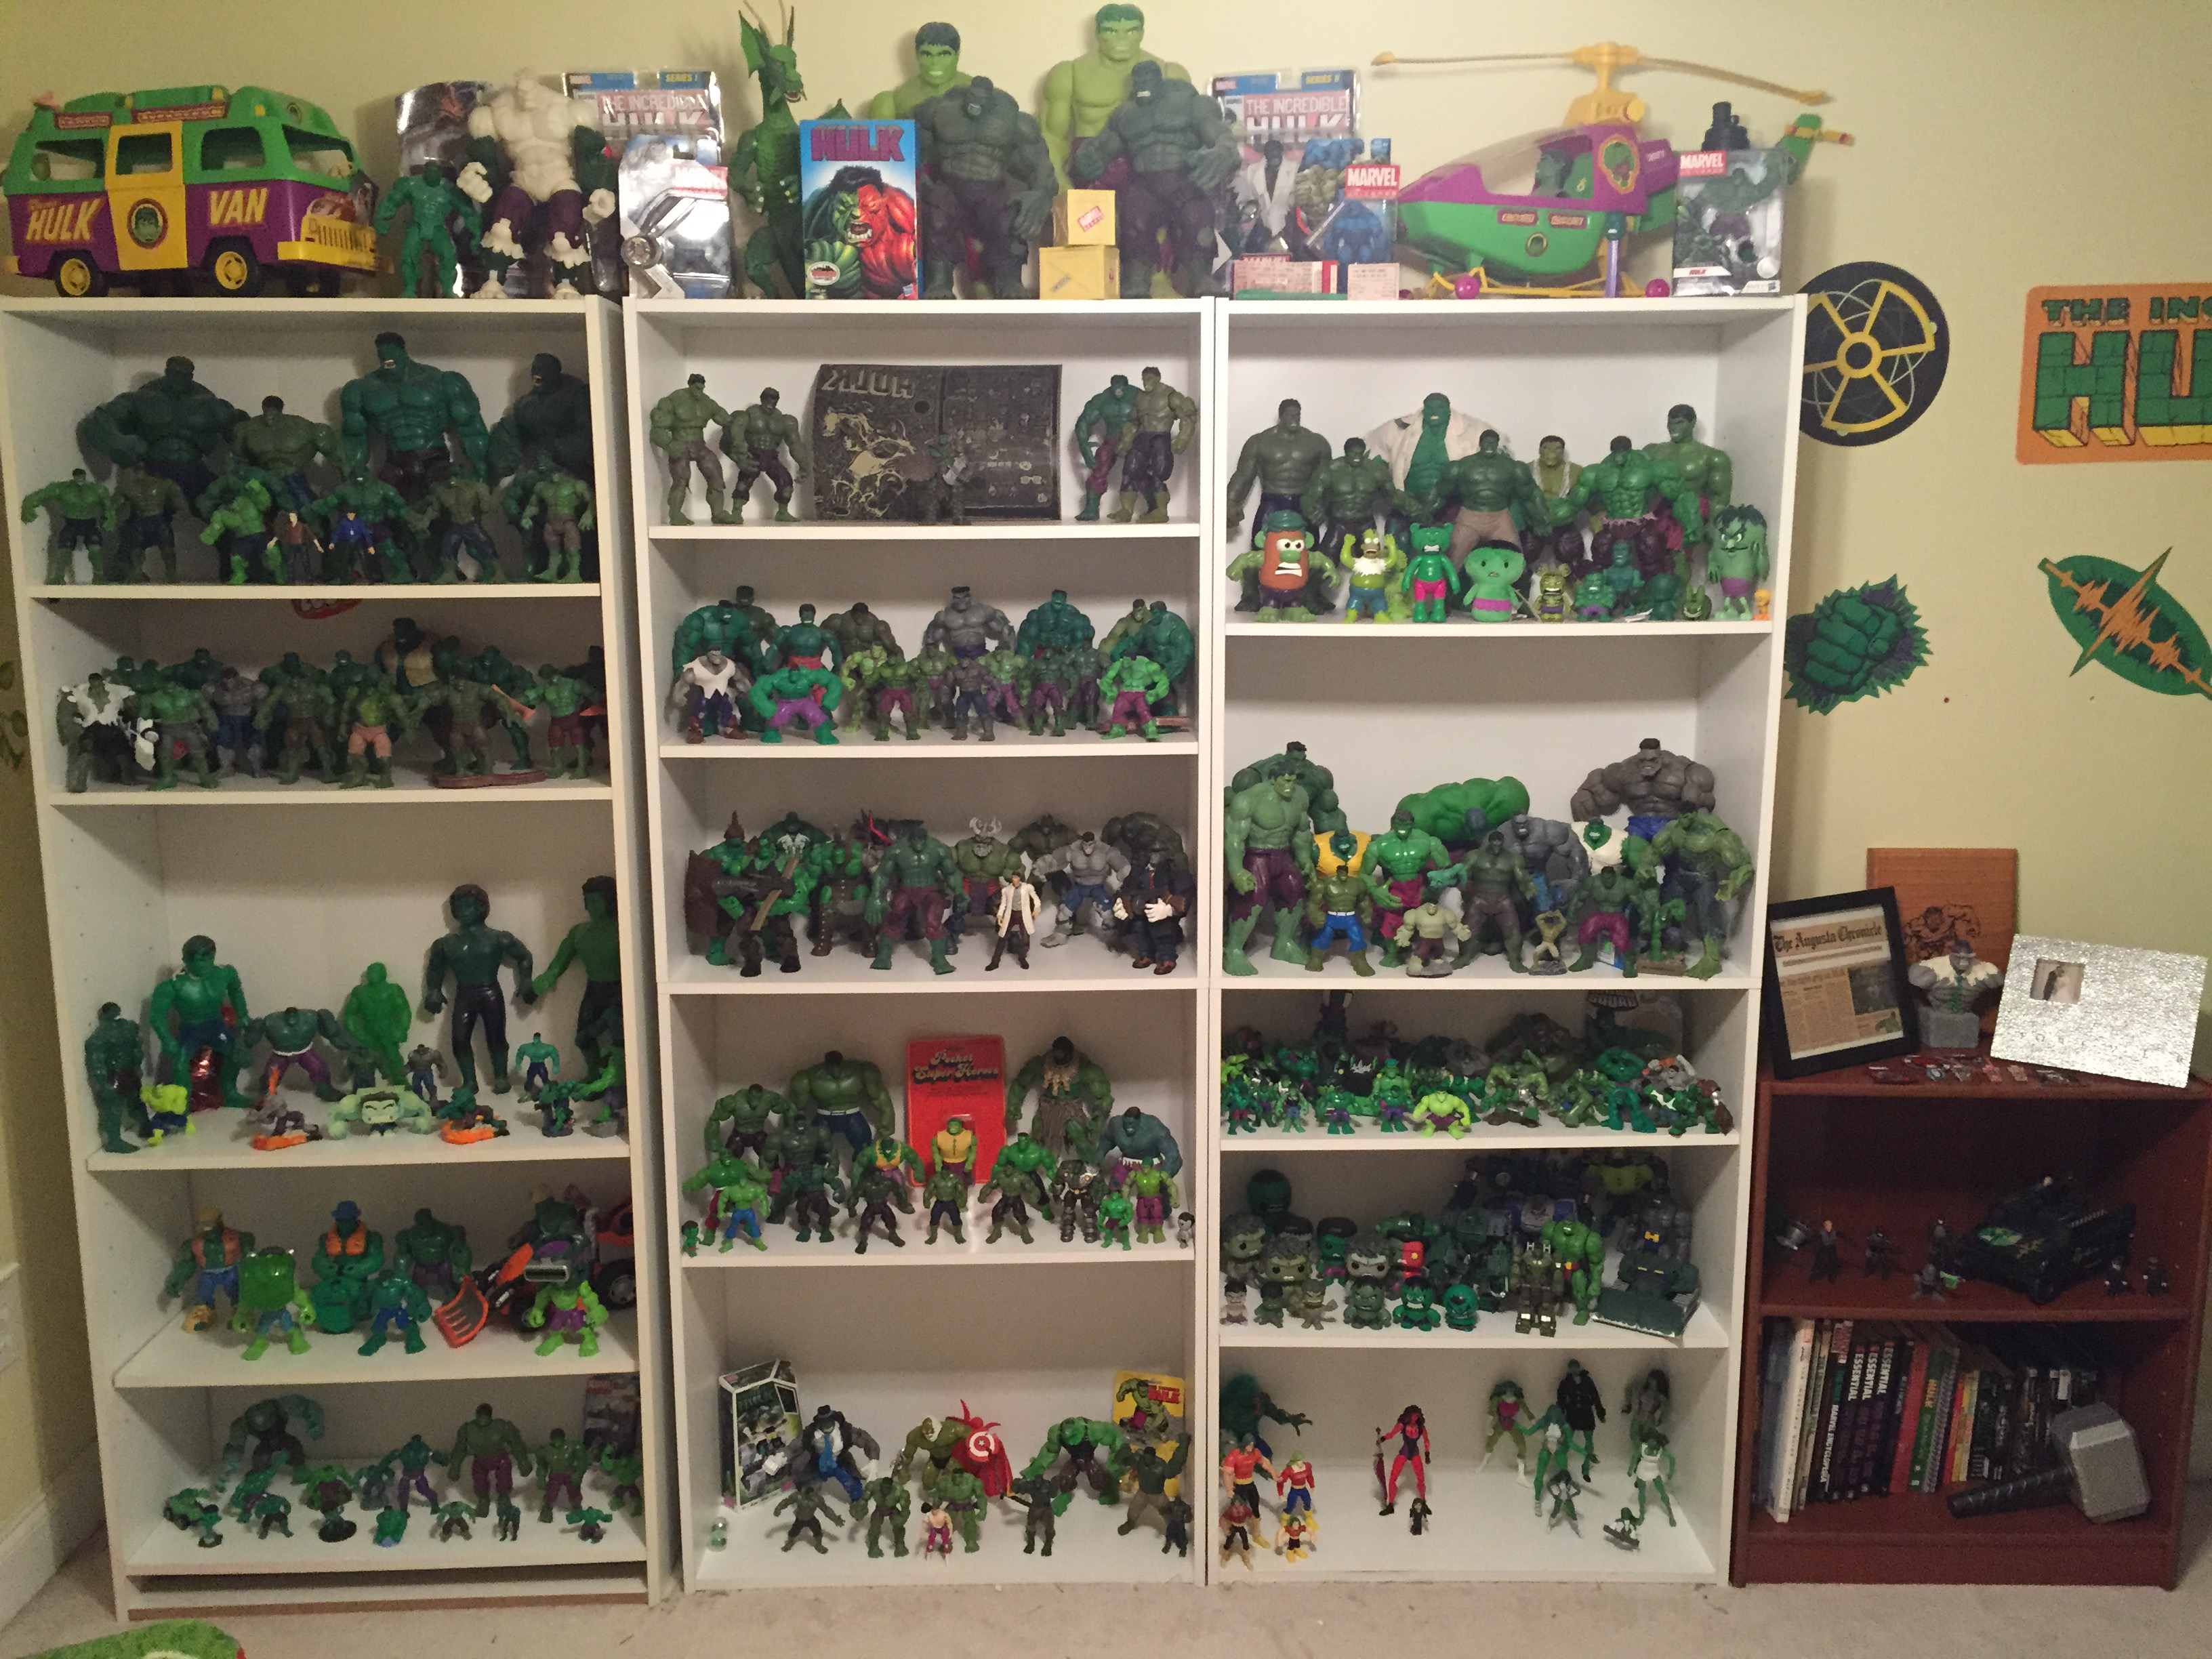 New Incredible Hulk Action Figure Set Up For My Hulk Room